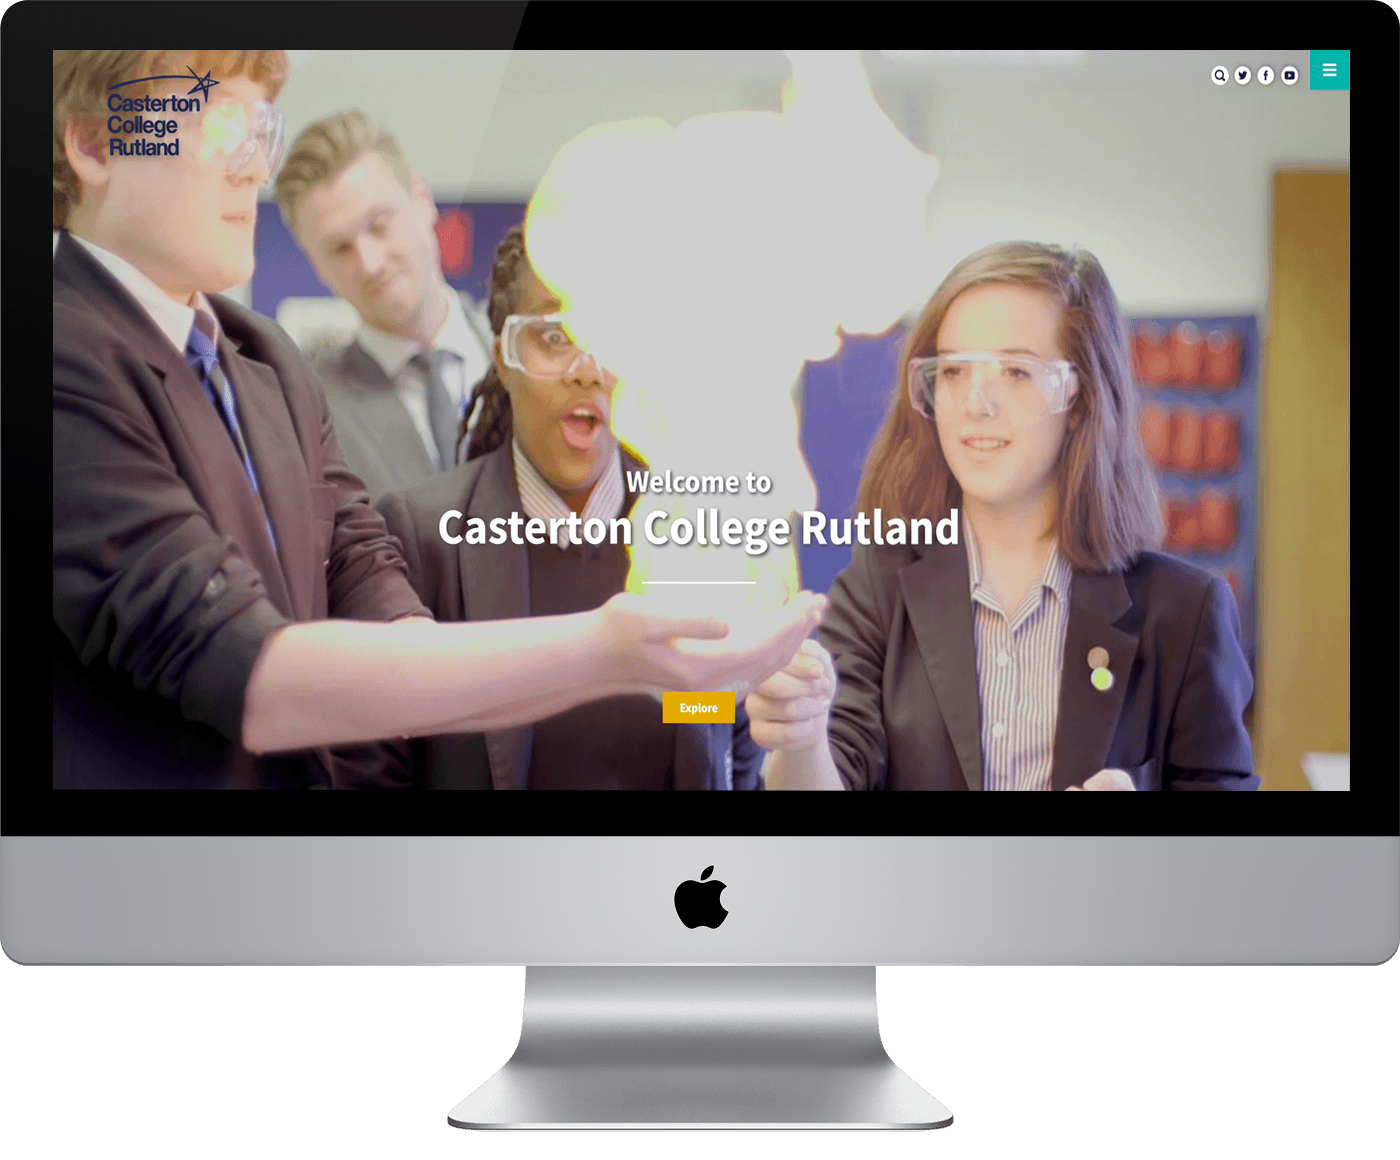 Video based website for Casterton College